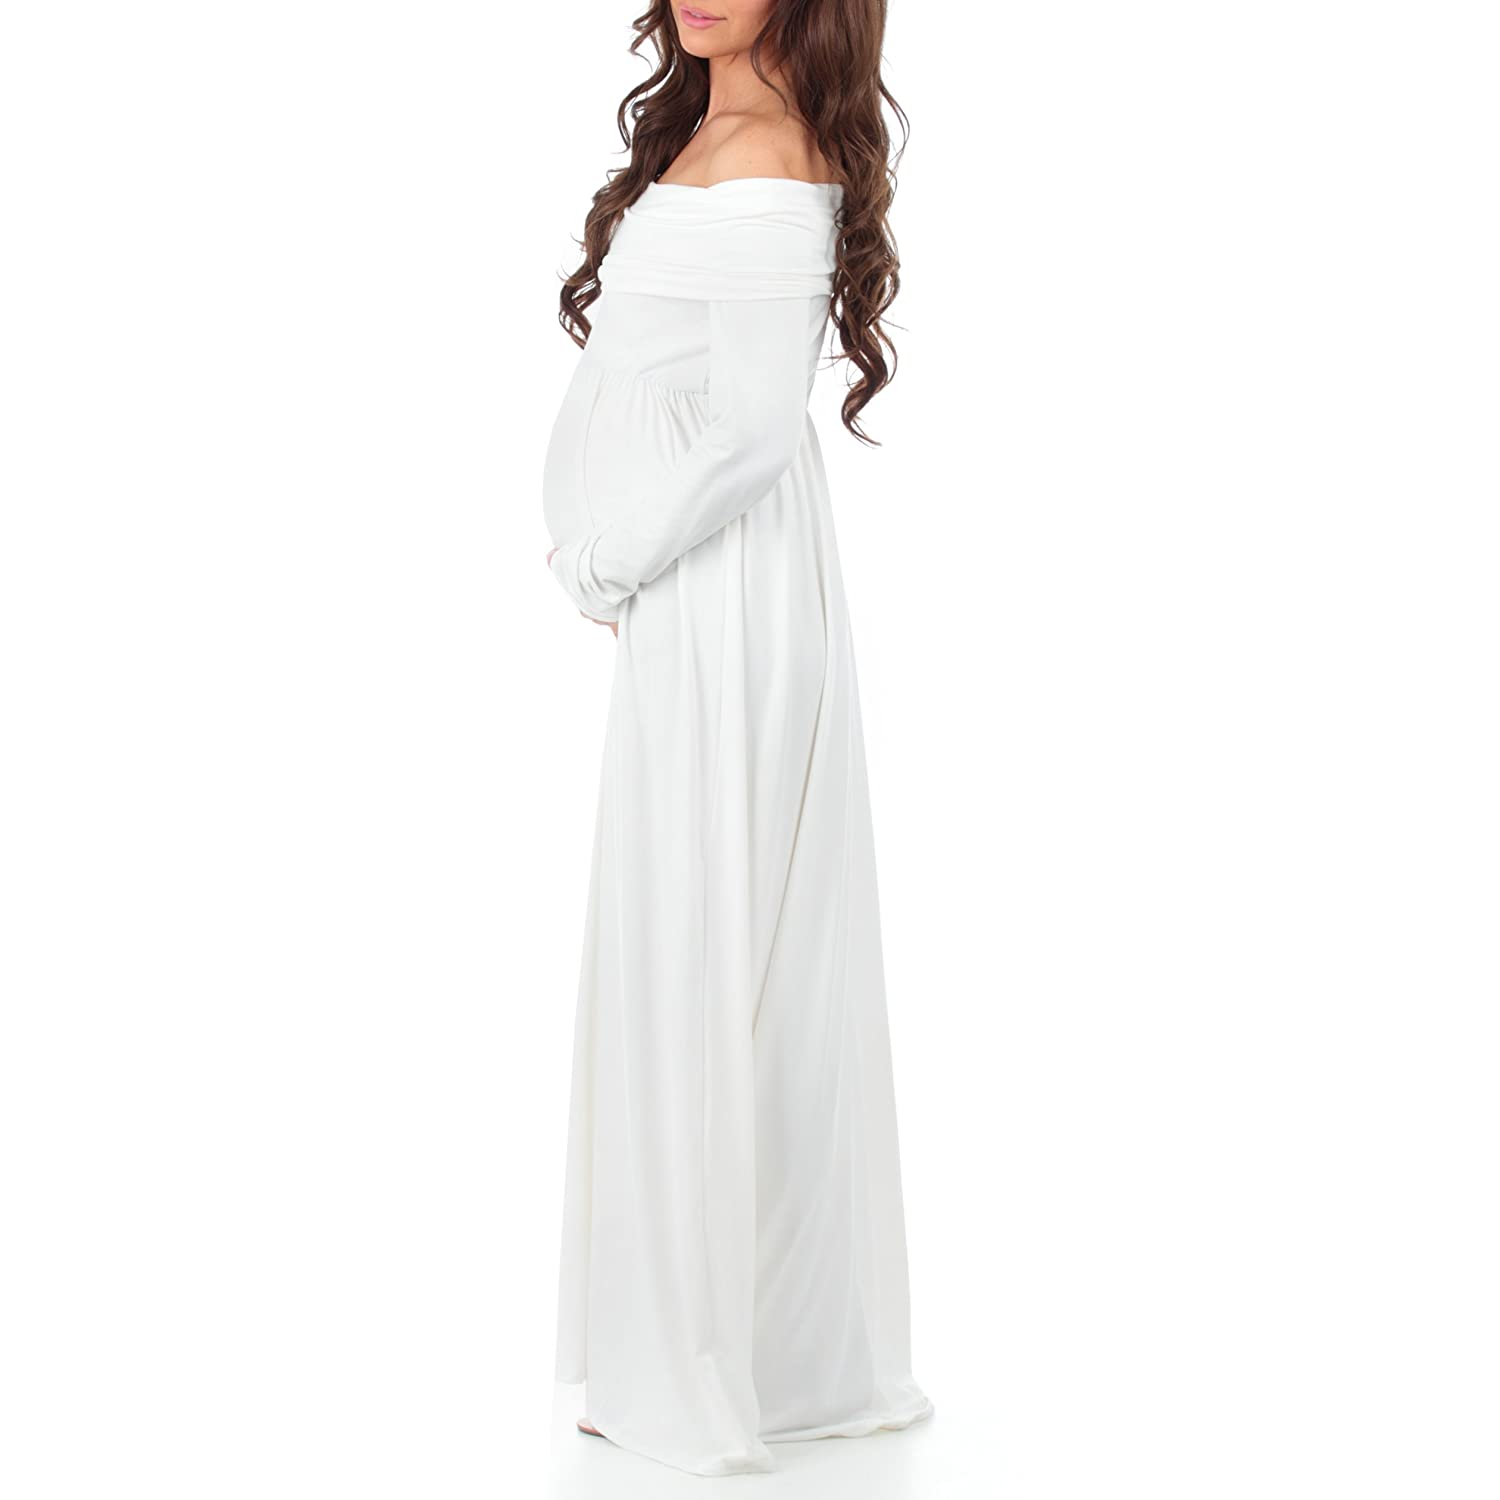 3280852ce4941 Amazon.com: Women's Cowl Neck and Over The Shoulder Ruched Maternity and Nursing  Dress by Mother Bee - Made in USA (Medium, Ivory): Clothing